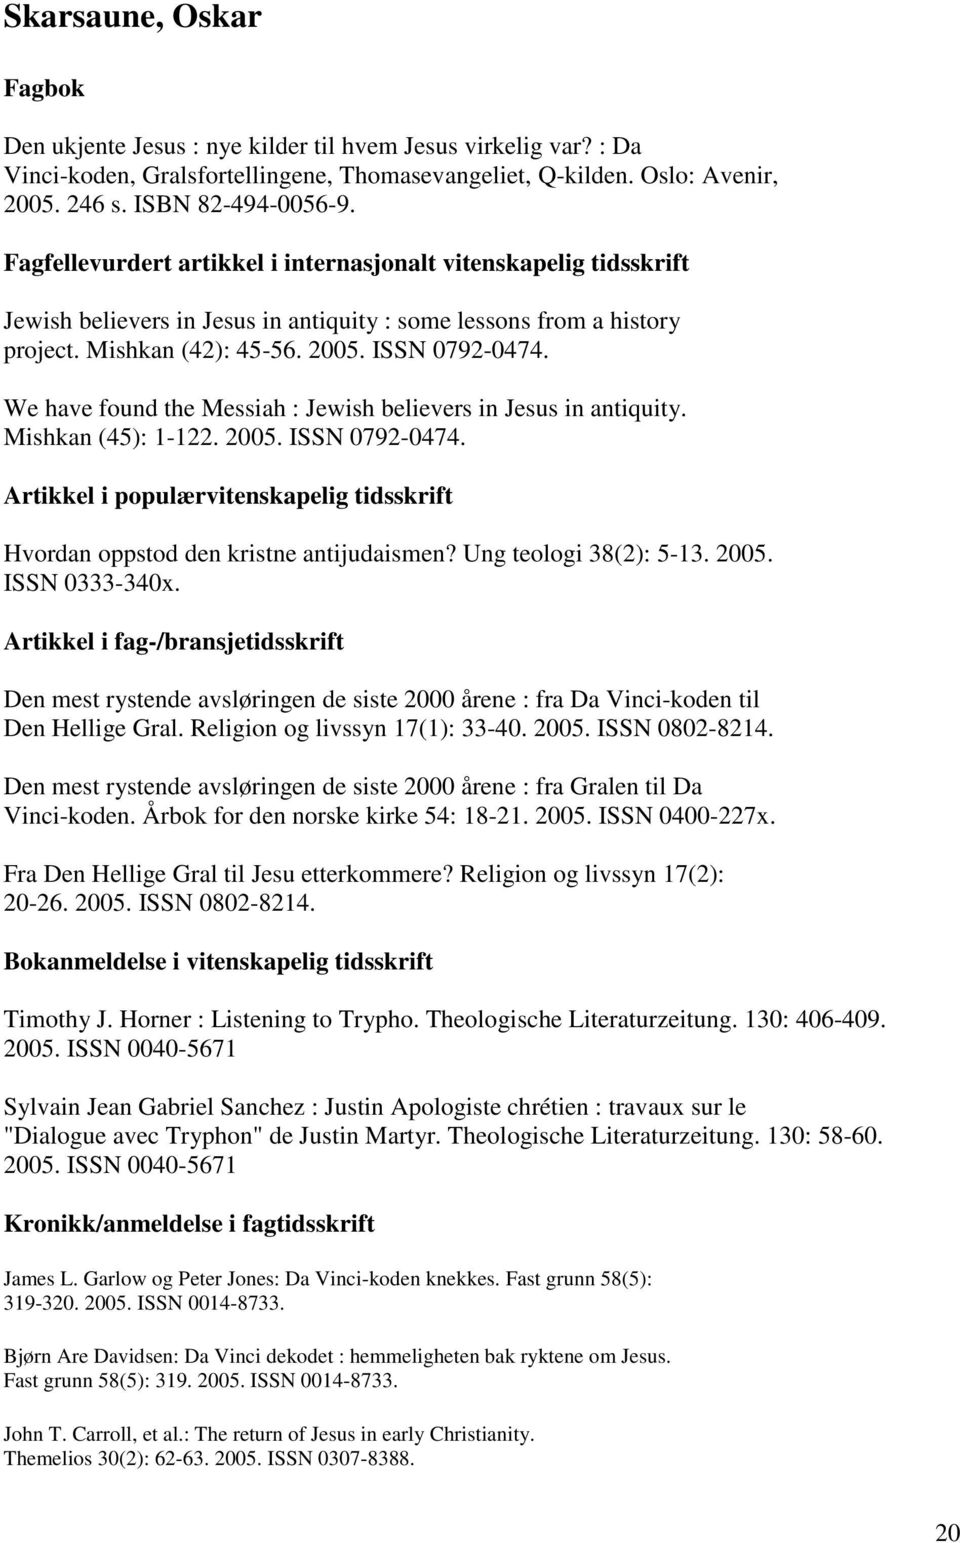 We have found the Messiah : Jewish believers in Jesus in antiquity. Mishkan (45): 1-122. 2005. ISSN 0792-0474. Hvordan oppstod den kristne antijudaismen? Ung teologi 38(2): 5-13. 2005. ISSN 0333-340x.